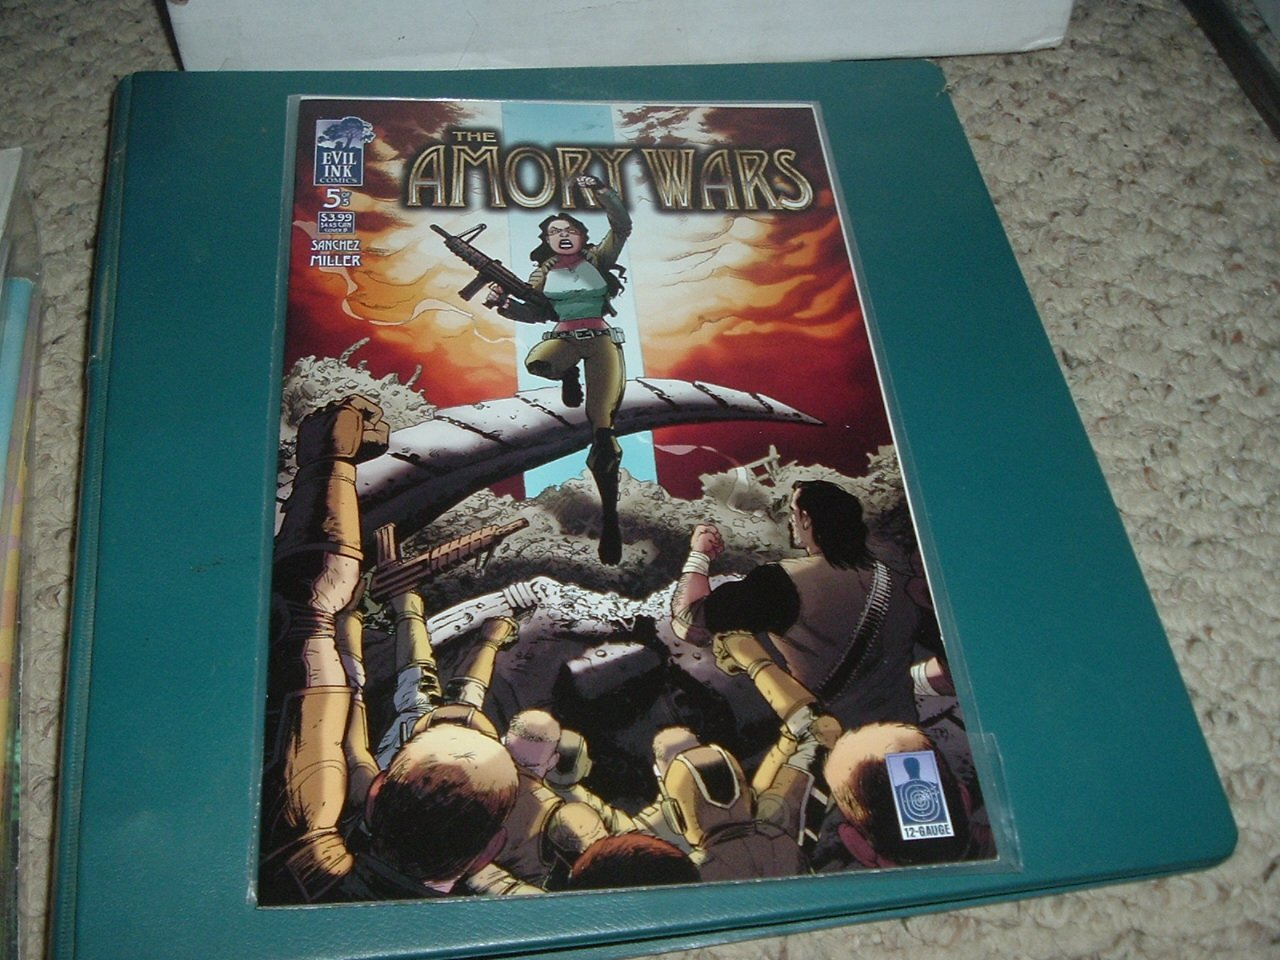 NEAR MINT- Amory Wars #5 (volume 1) RARE Evil Ink Cover Edition B Second Stage Turbine Blade